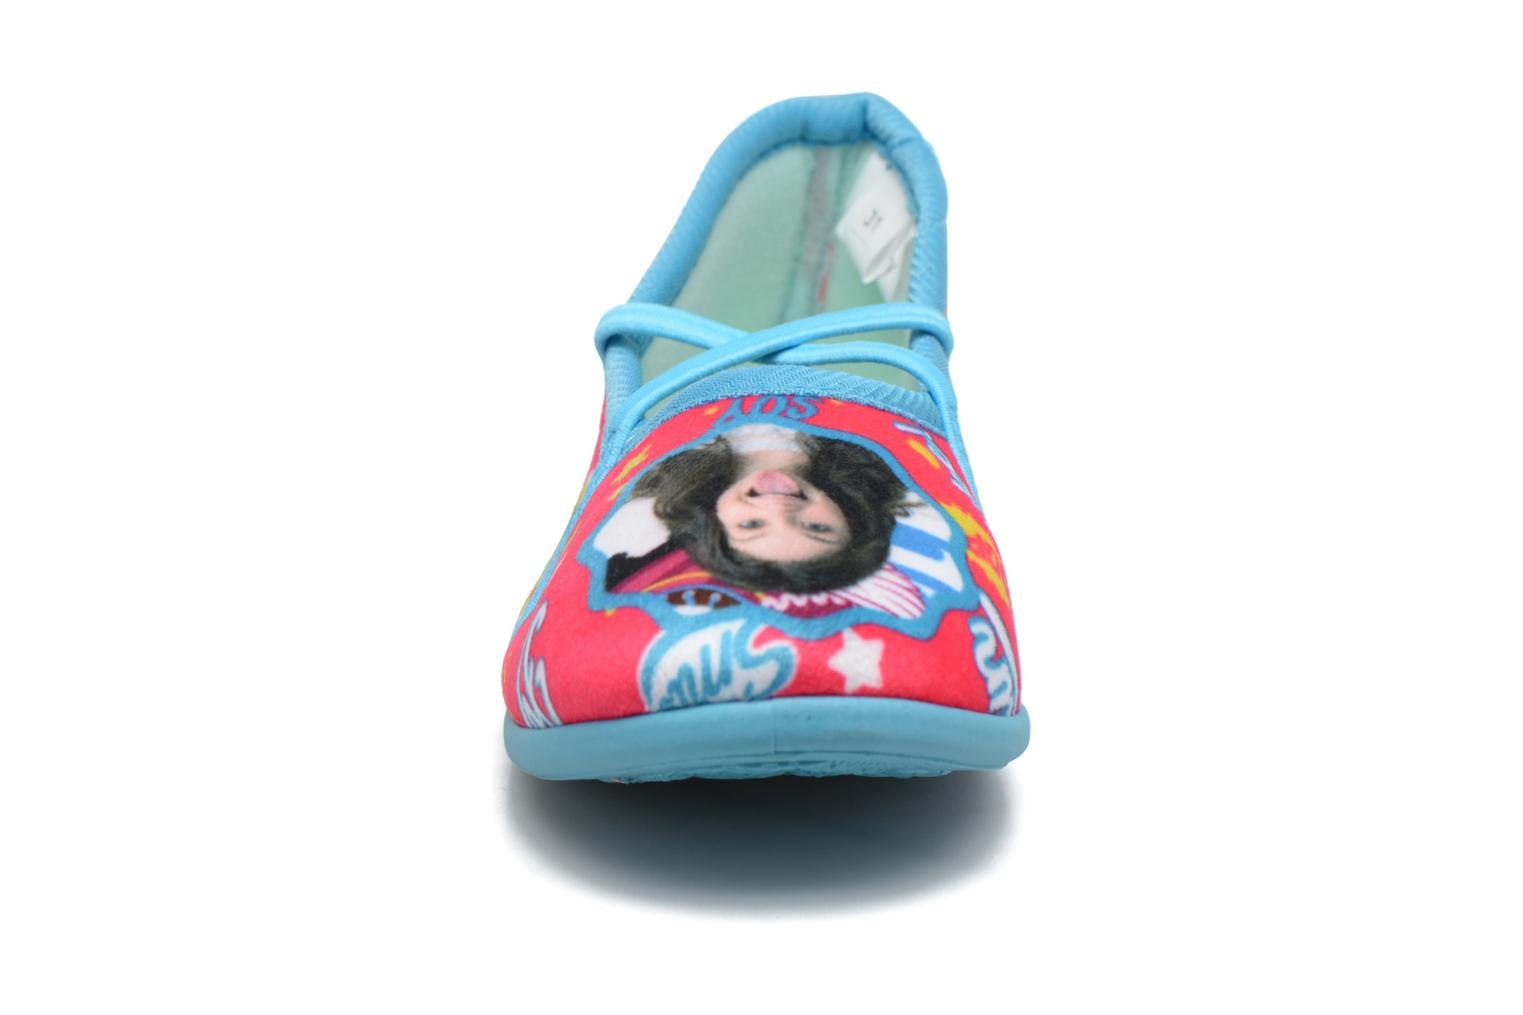 Slippers Soy Luna Sanadora Blue model view